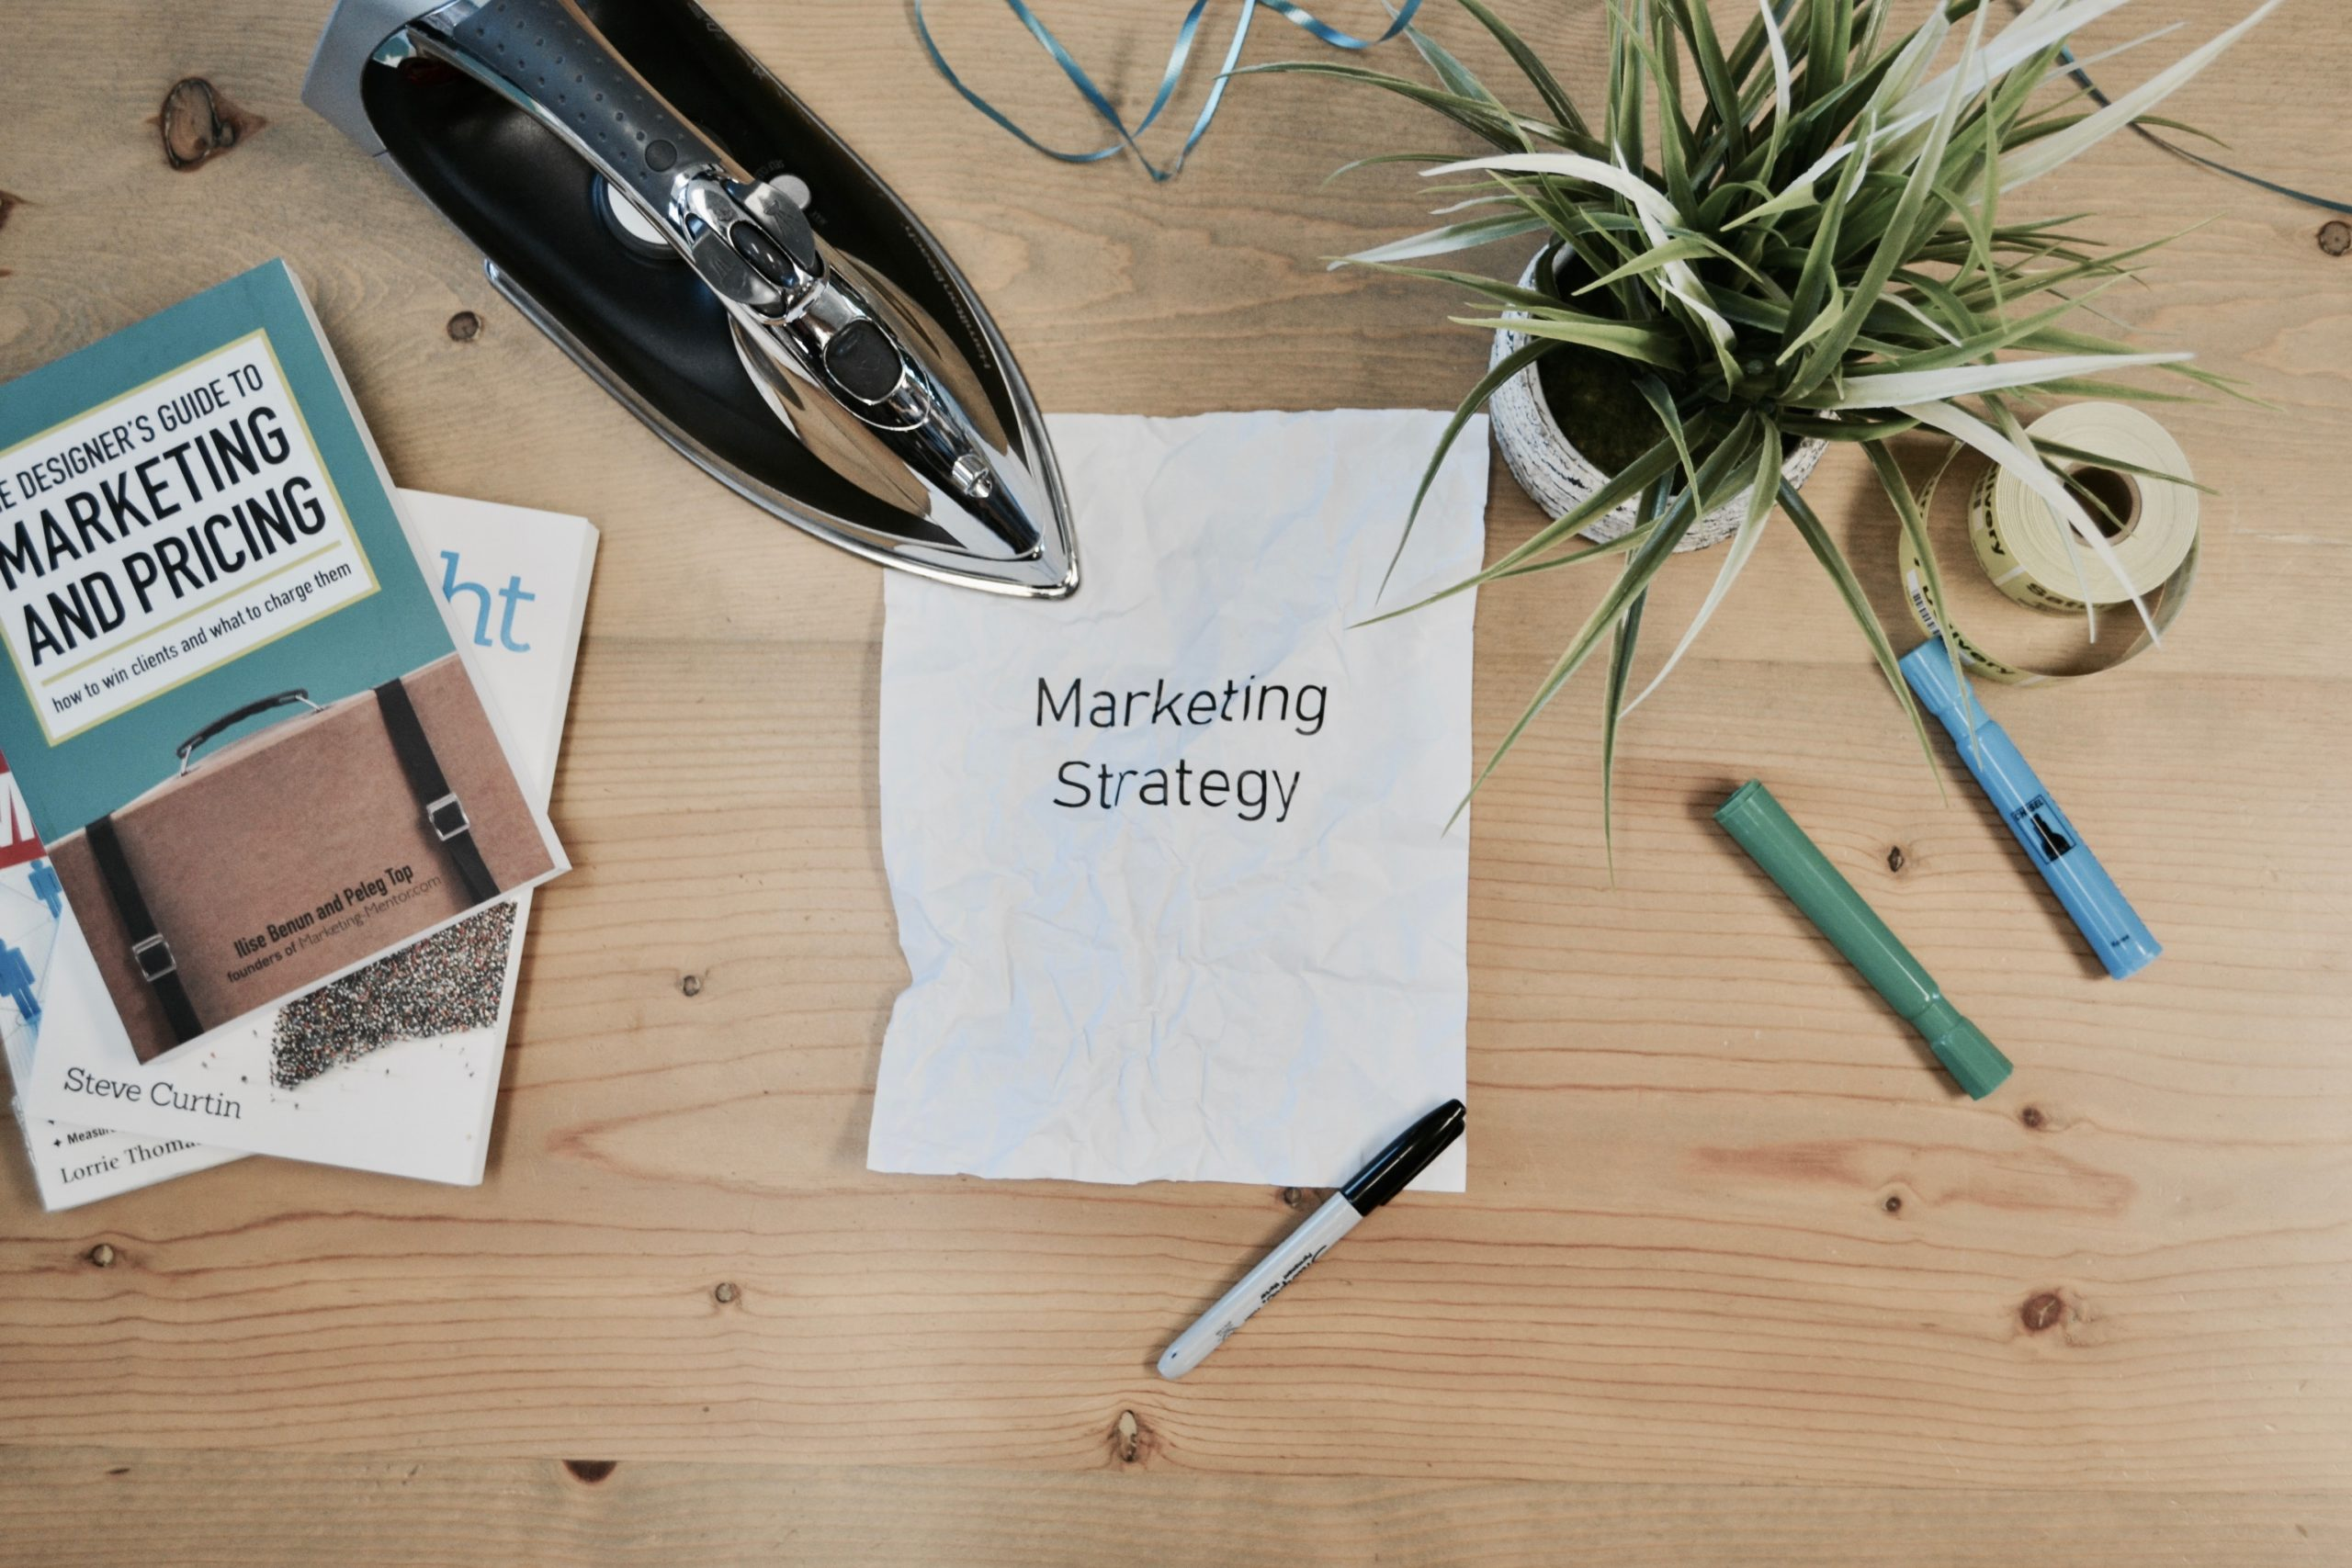 marketing strategy written on a piece of paper